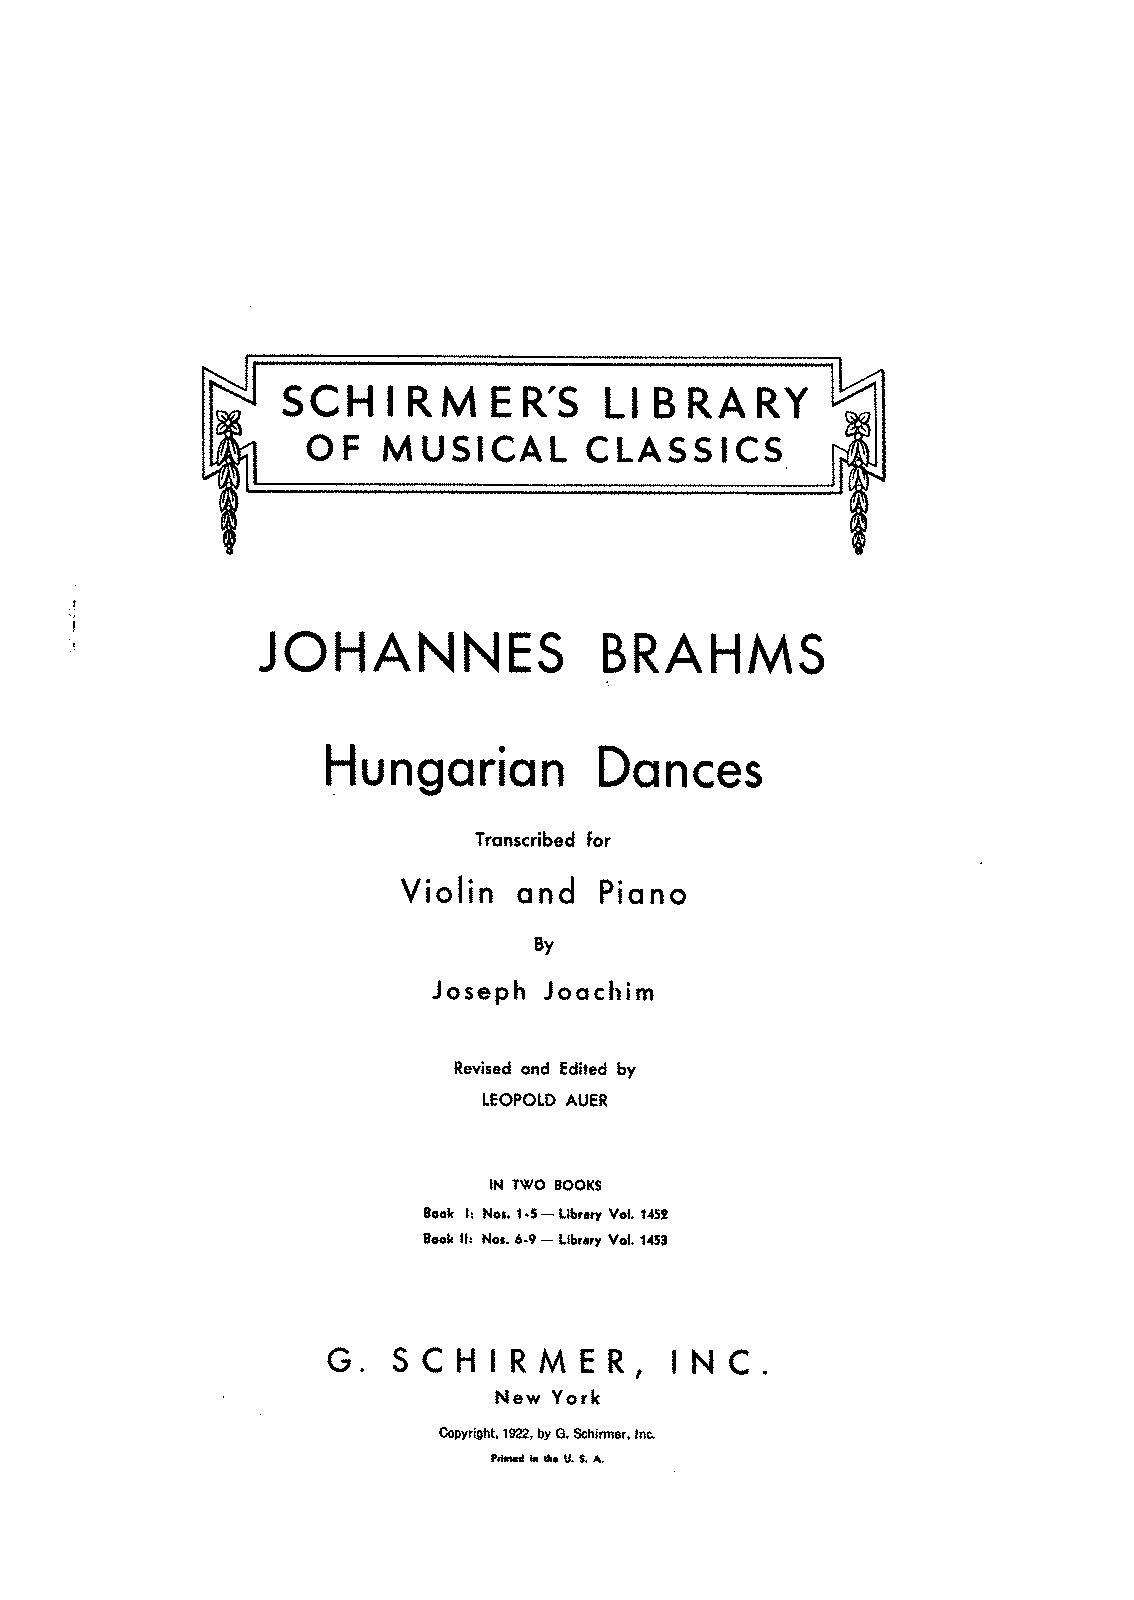 PMLP16016-Brahms - Hungarian Dances (Joachim - Auer) for violin and piano vol1 (Nos 1-5) score.pdf